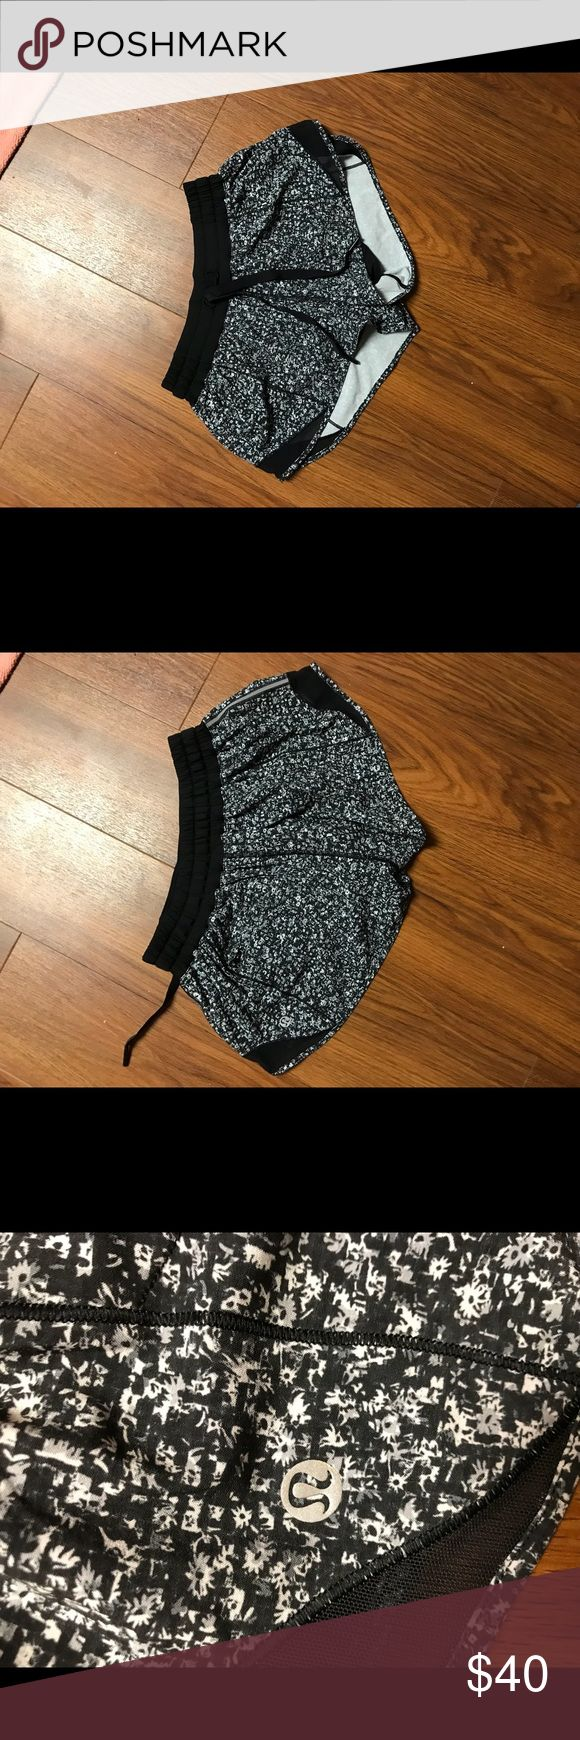 New Lululemon shorts! New! Worn once or twice, size 4. Nothing wrong with them just ordered them online and a little small on me. lululemon athletica Shorts